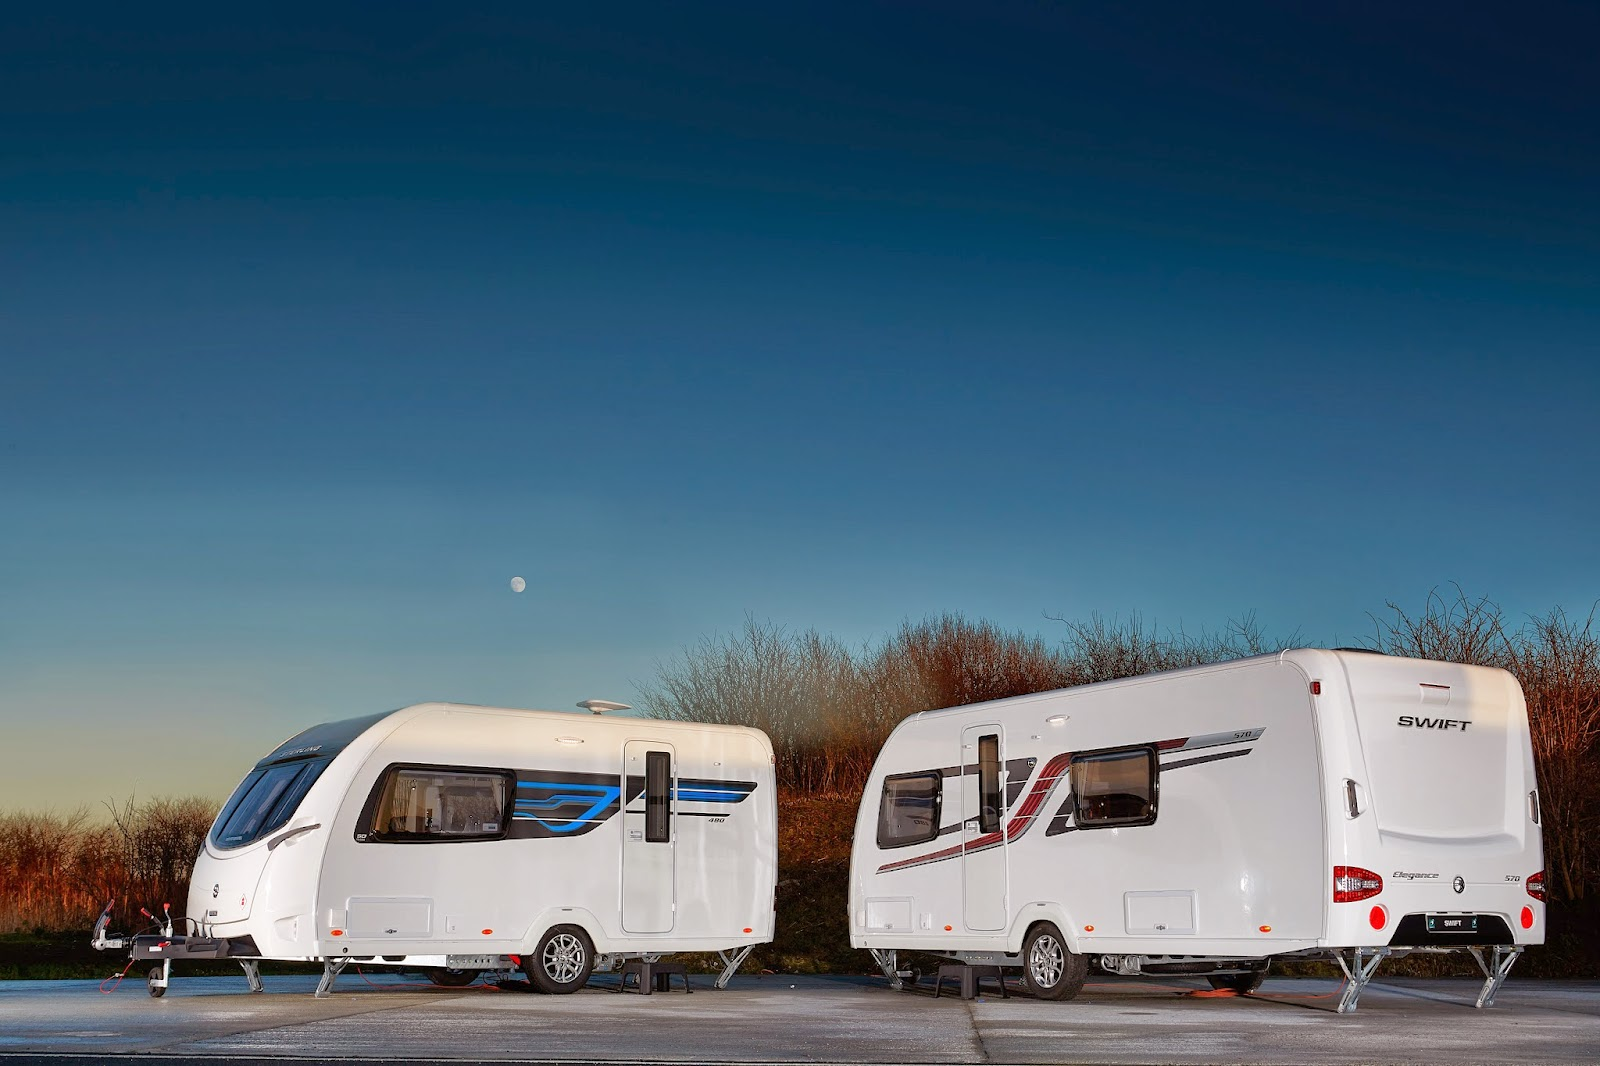 http://www.swiftgroup.co.uk/caravans/swift/elegance/features